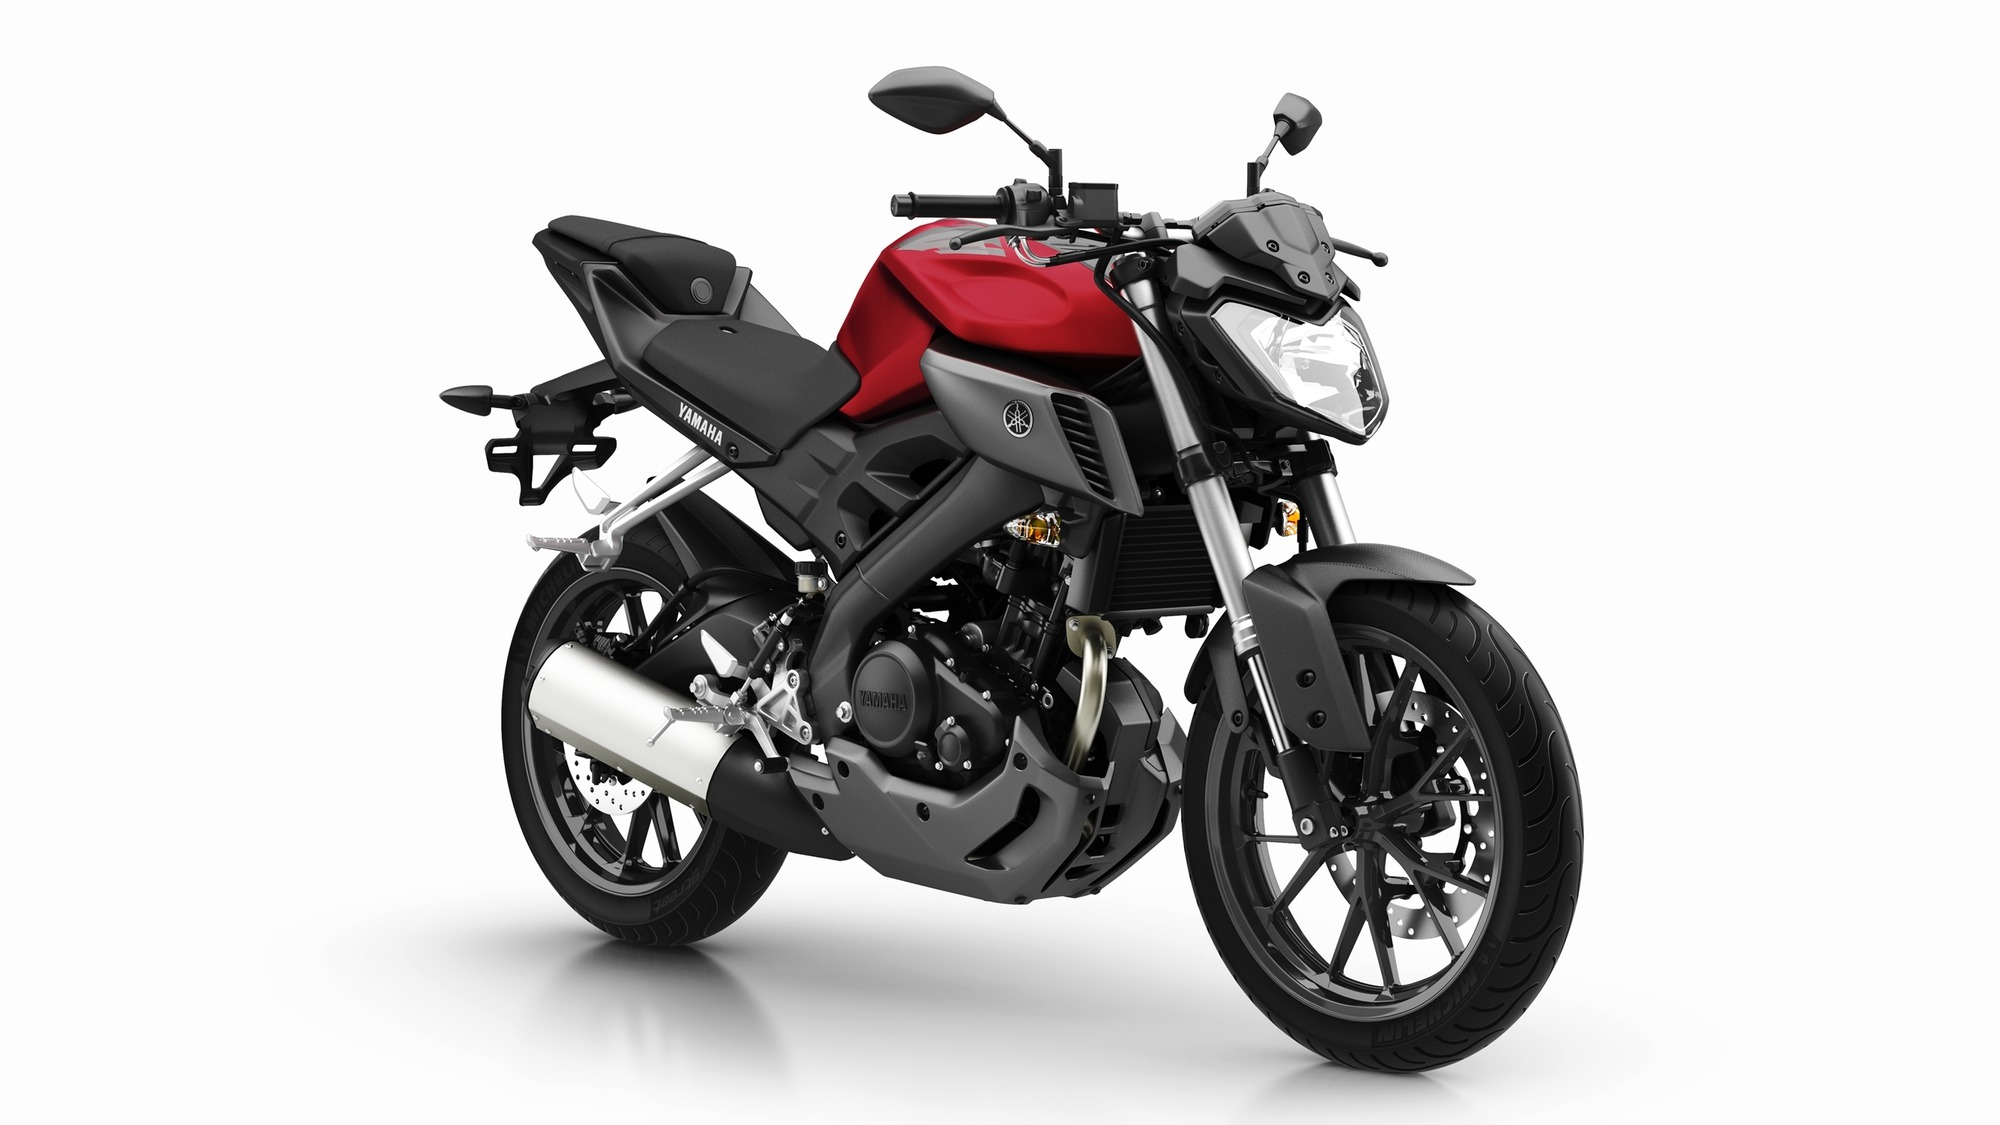 nouveaut 2014 yamaha mt 125 l 39 exp rience dark side continue yamaha actu. Black Bedroom Furniture Sets. Home Design Ideas